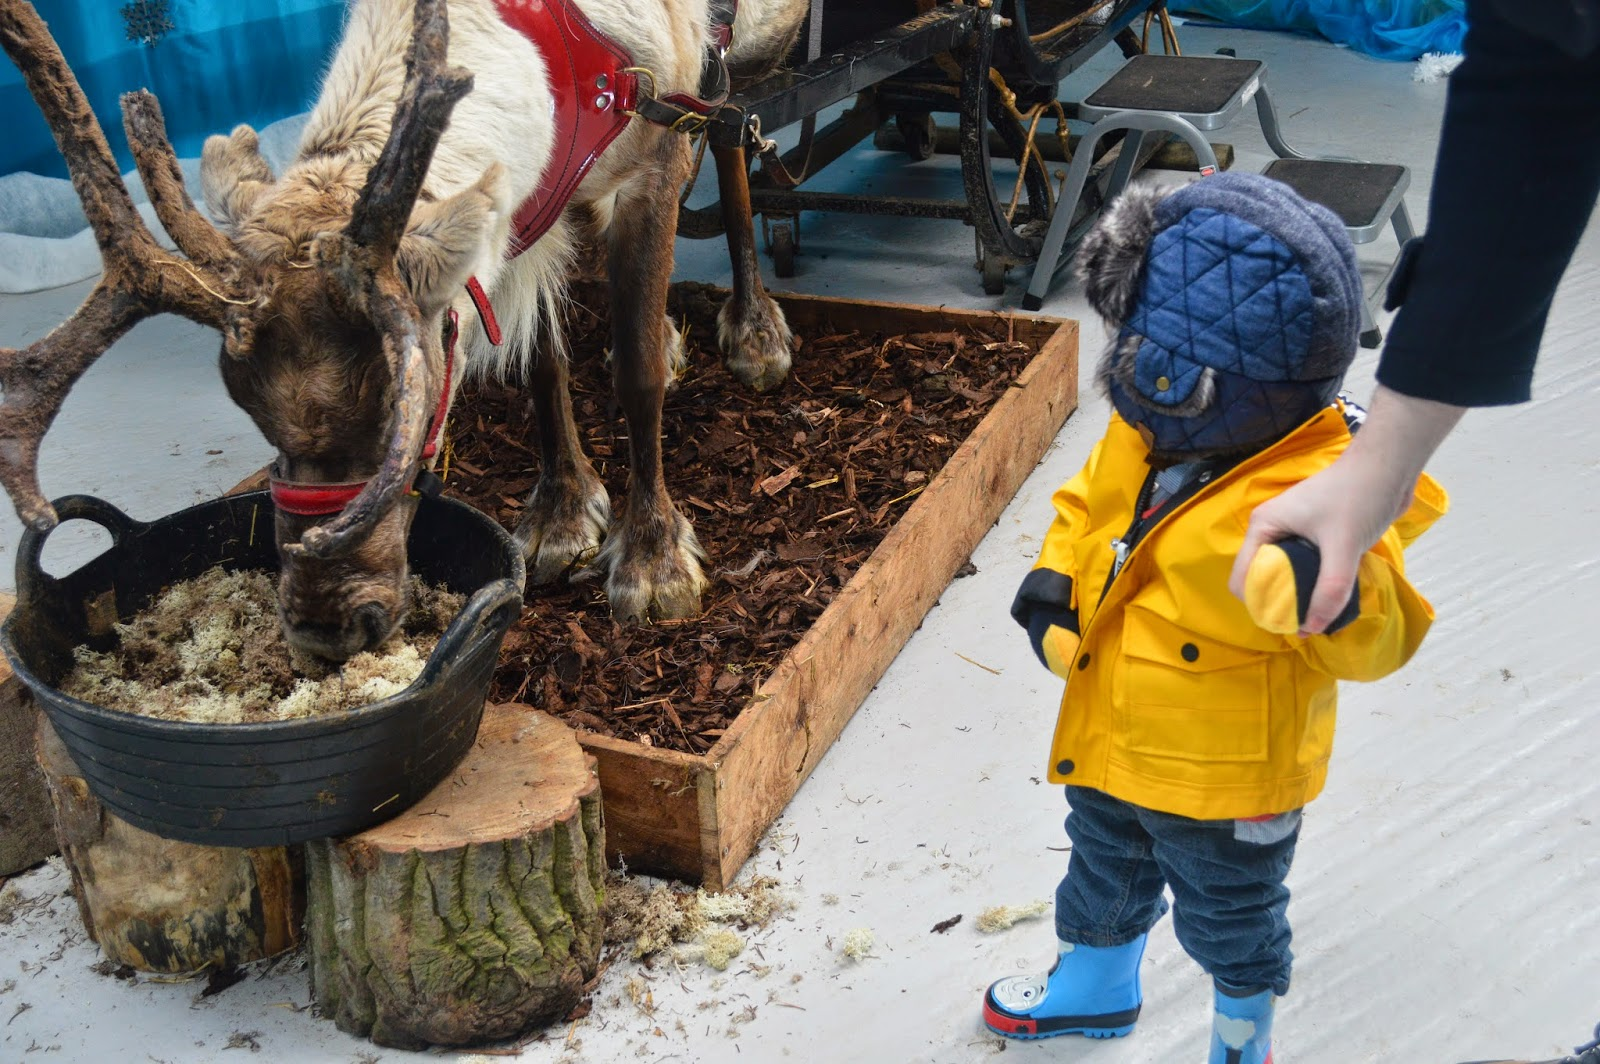 Blithbury Reindeer Lodge - To Become Mum